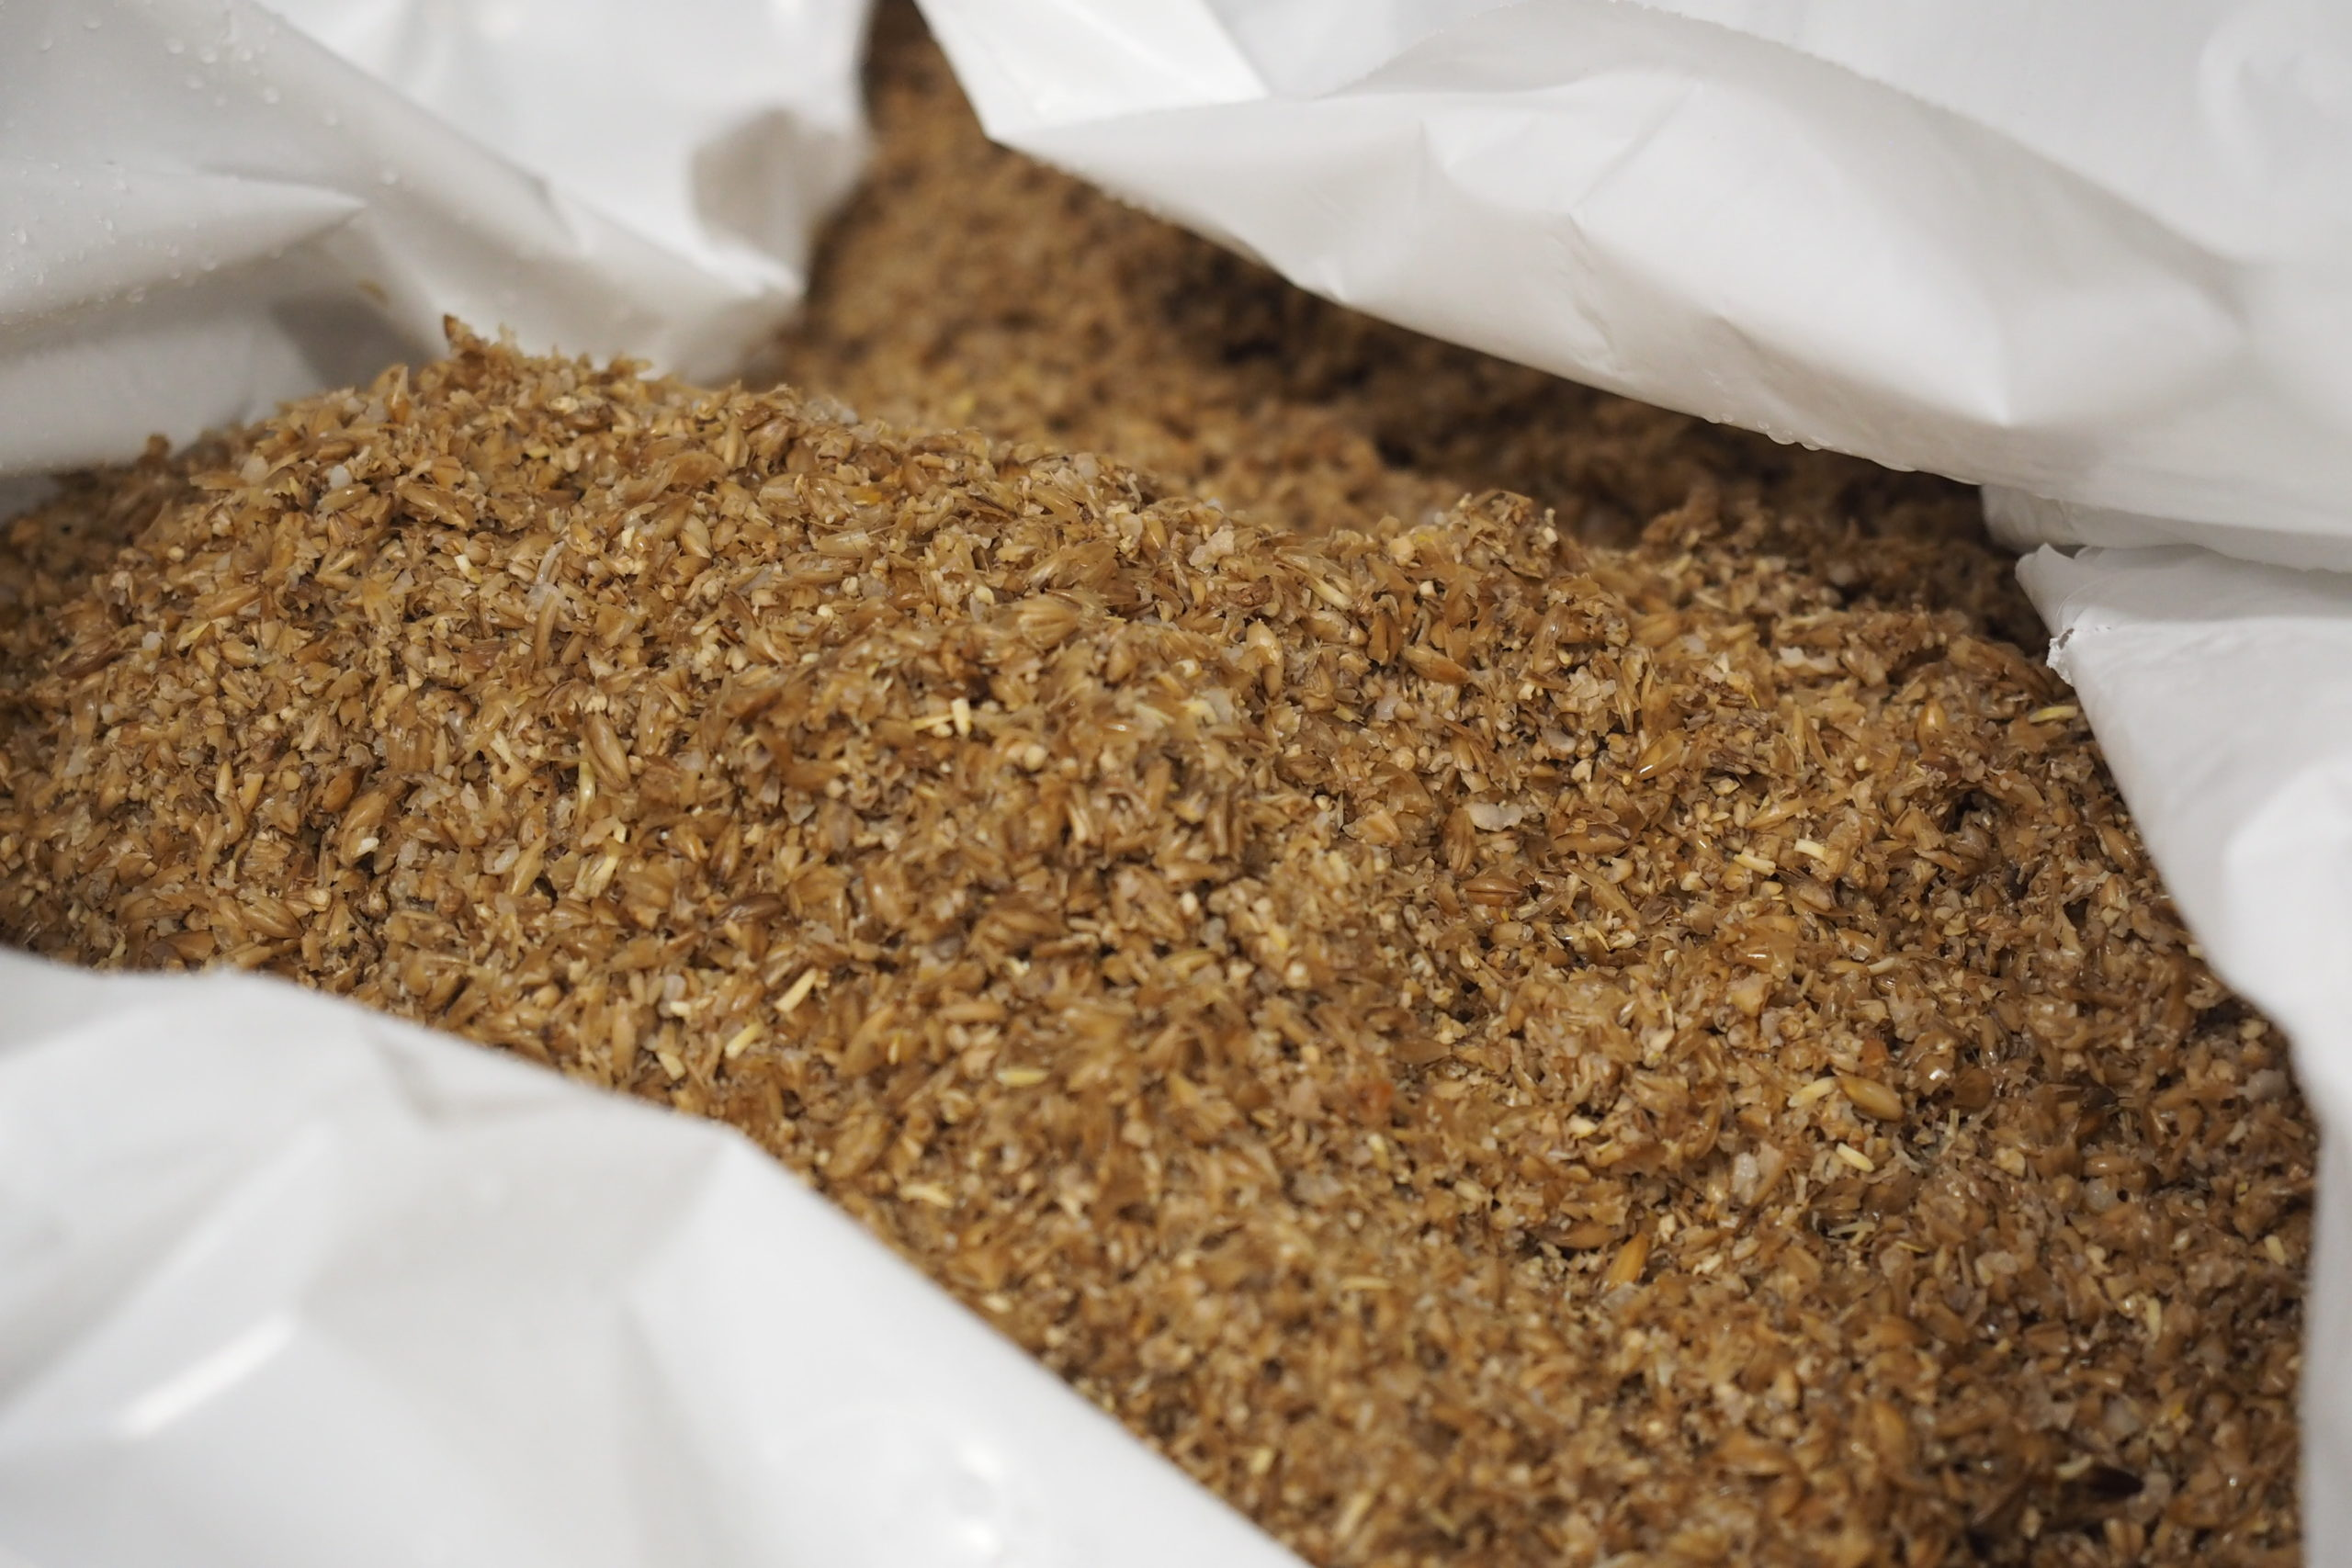 Can you replace malt barley grain flour with spent grains?